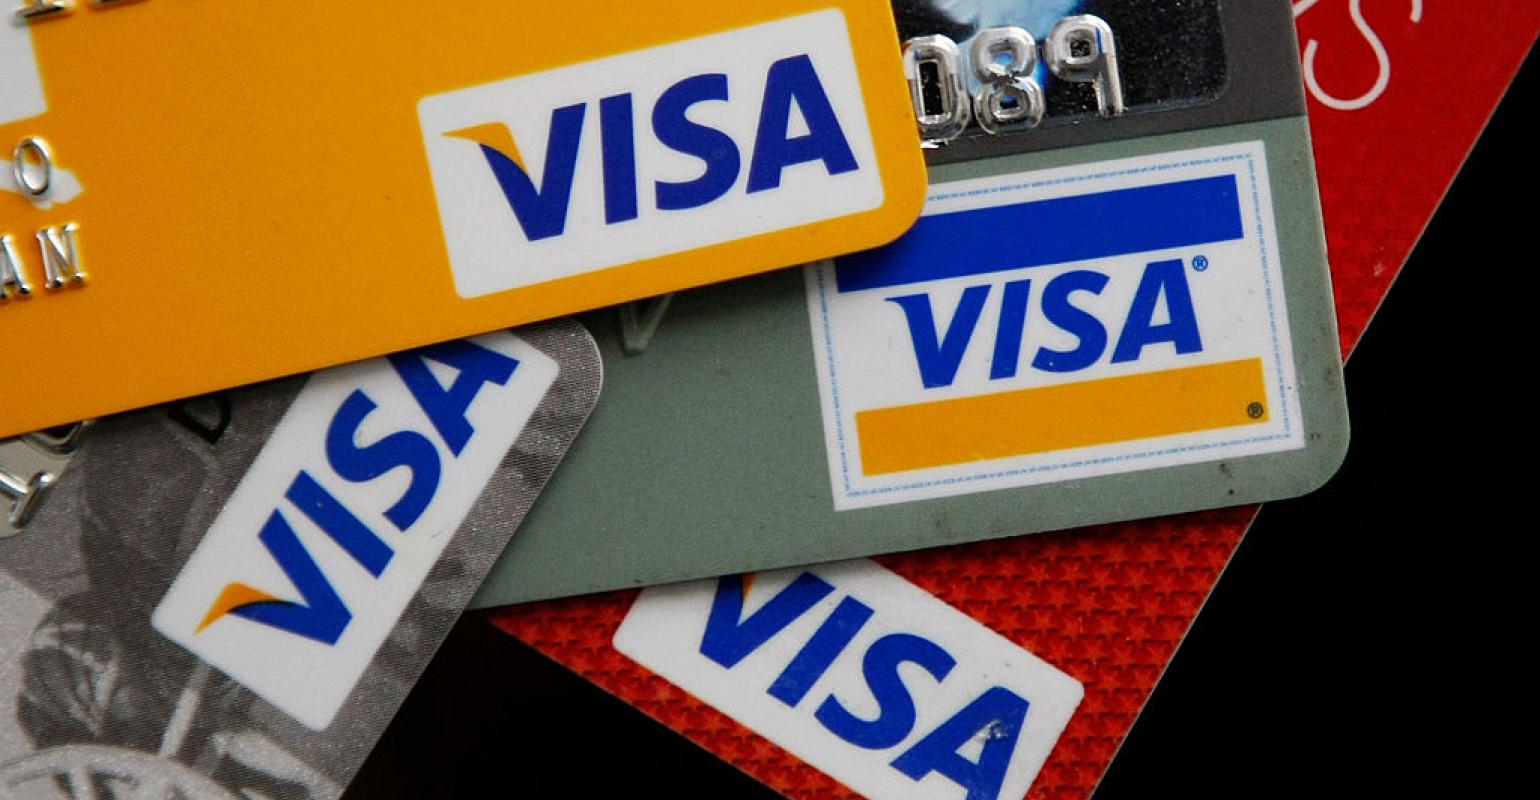 Visa's UK Network Outage: What You Need to Know | Data